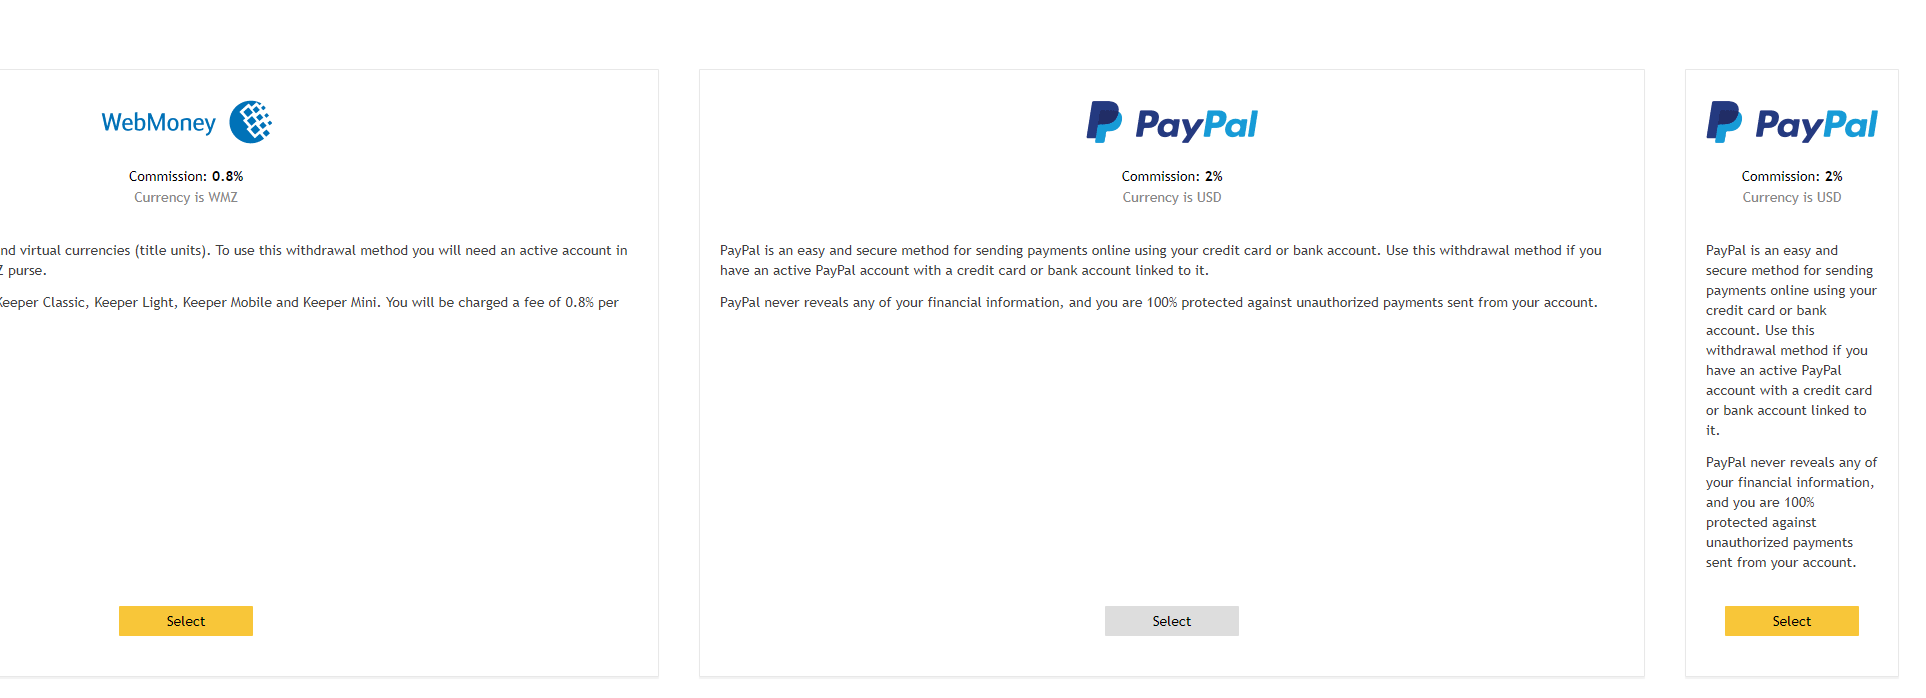 Trading platforms that accept paypal